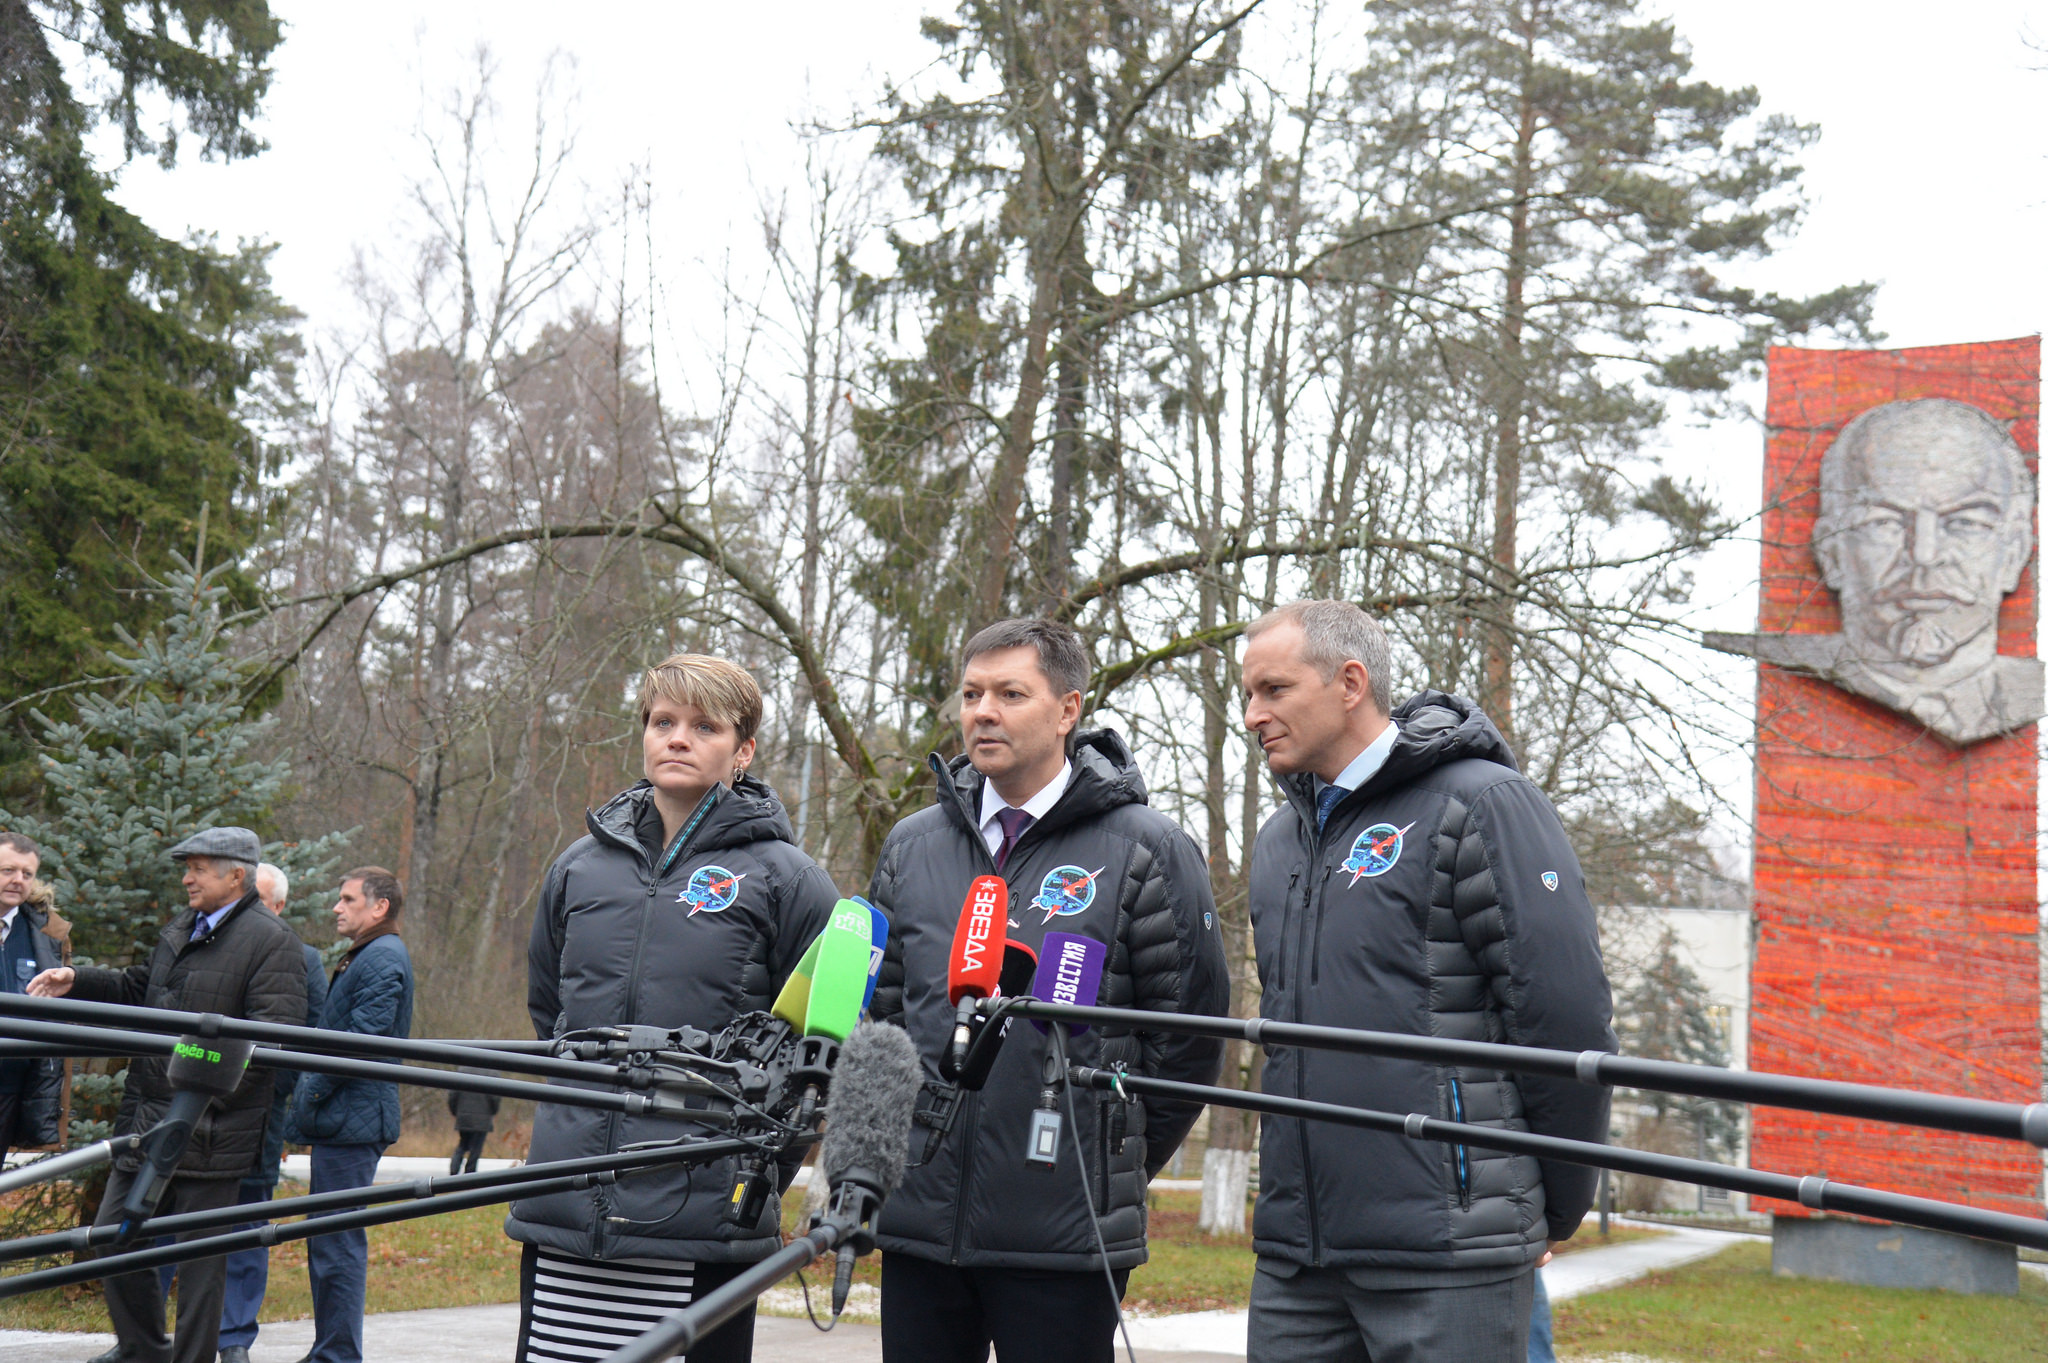 With the statue of Vladimir Lenin serving as a backdrop, Expedition 58 crew members Anne McClain of NASA (left), Oleg Kononenko of Roscosmos (center) and David Saint-Jacques of the Canadian Space Agency (right) answer reporters' questions Nov. 19 at the Gagarin Cosmonaut Training Center in Star City, Russia before boarding a plane to fly to their launch site in Baikonur, Kazakhstan. McClain, Kononenko and Saint-Jacques will launch Dec. 3 on the Soyuz MS-11 spacecraft from the Baikonur Cosmodrome in Kazakhstan for a six-and-a-half month mission on the International Space Station